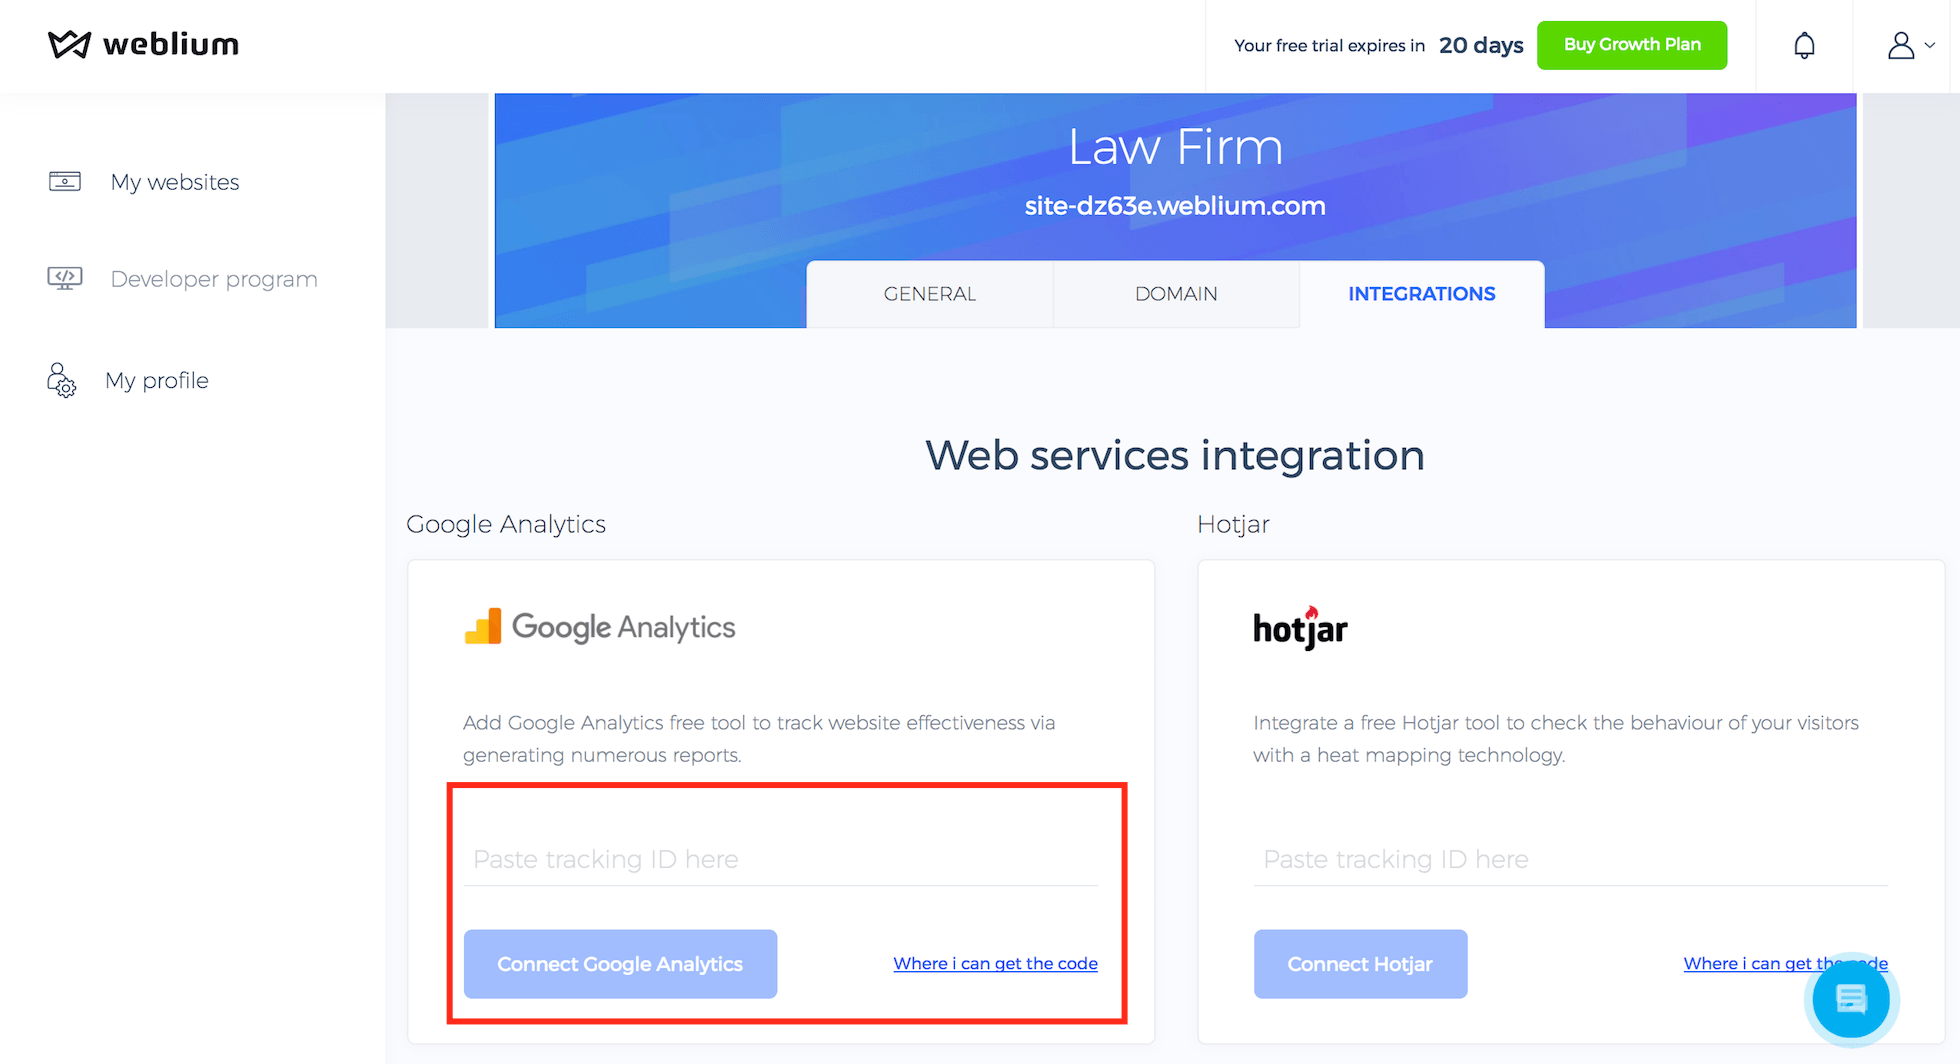 Connect Google Analytics on Weblium